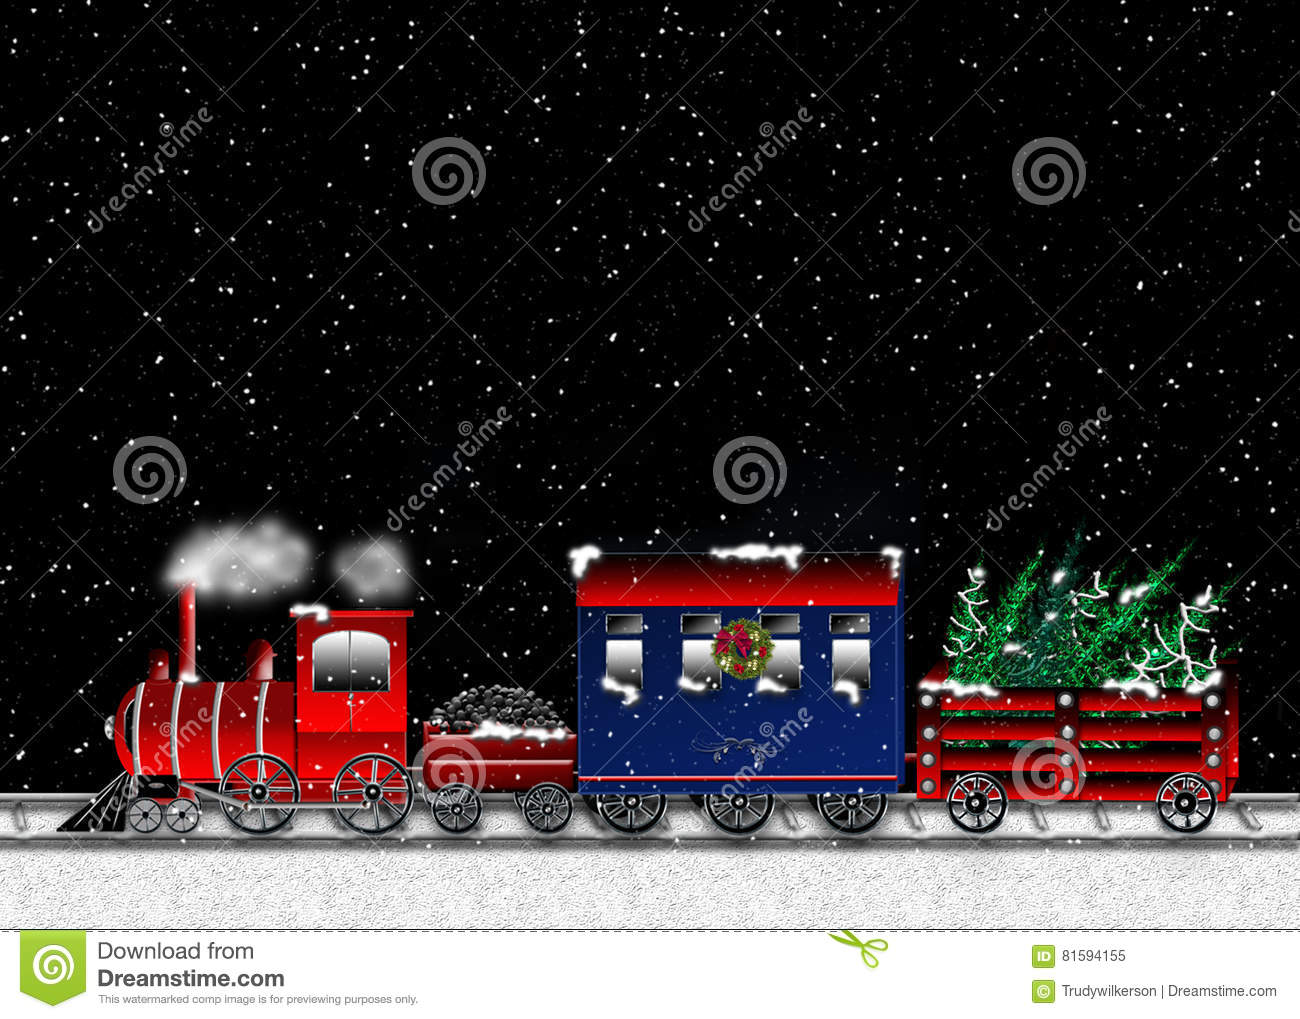 download choo choo train carrying christmas trees graphic stock illustration illustration of trees - Choo Choo Christmas